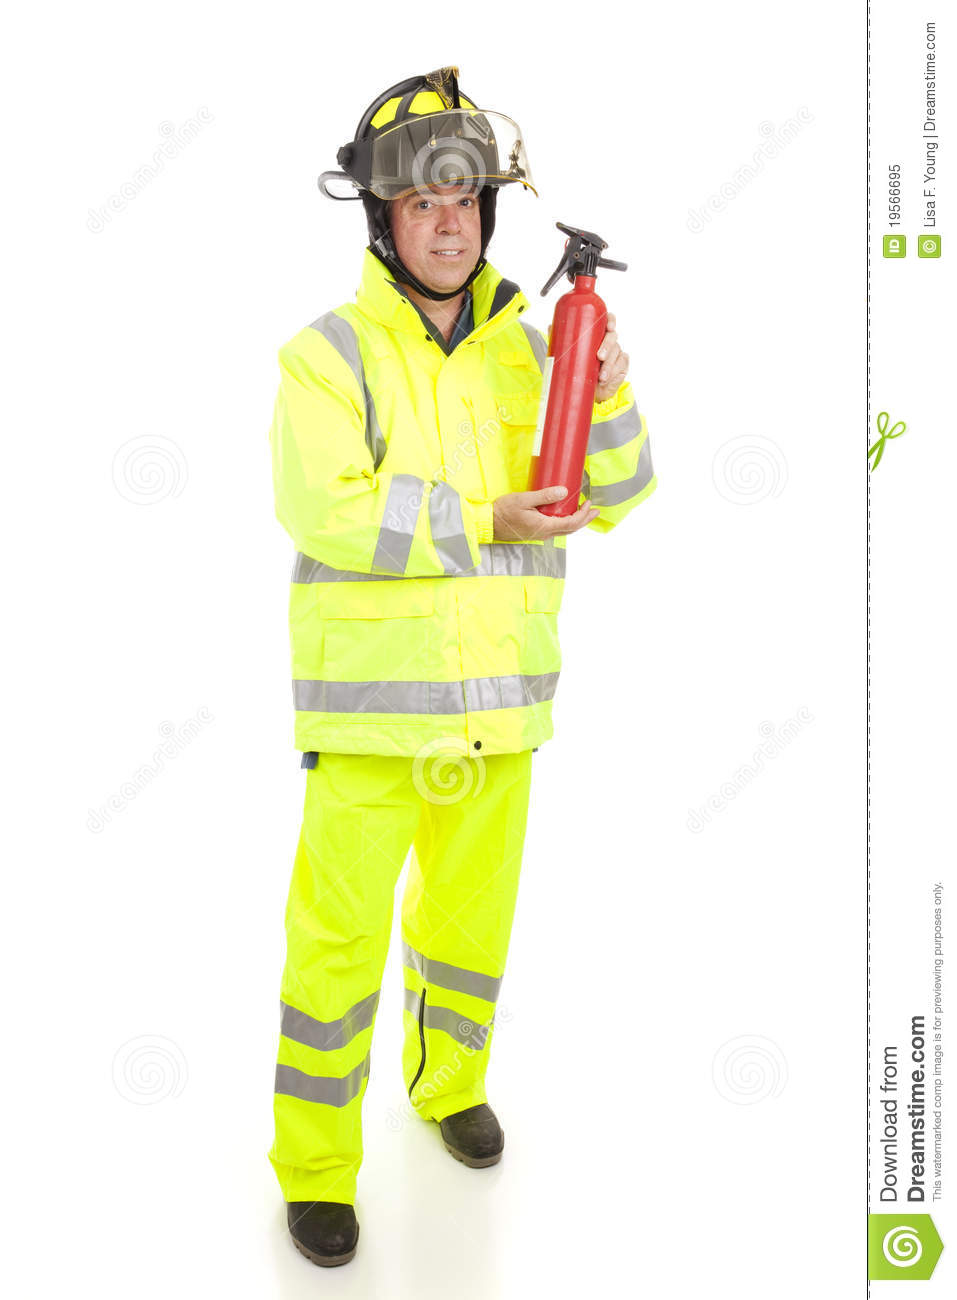 Blue Fire Extinguisher >> Fireman With Fire Extinguisher Stock Image - Image of emergency, clothing: 19566695